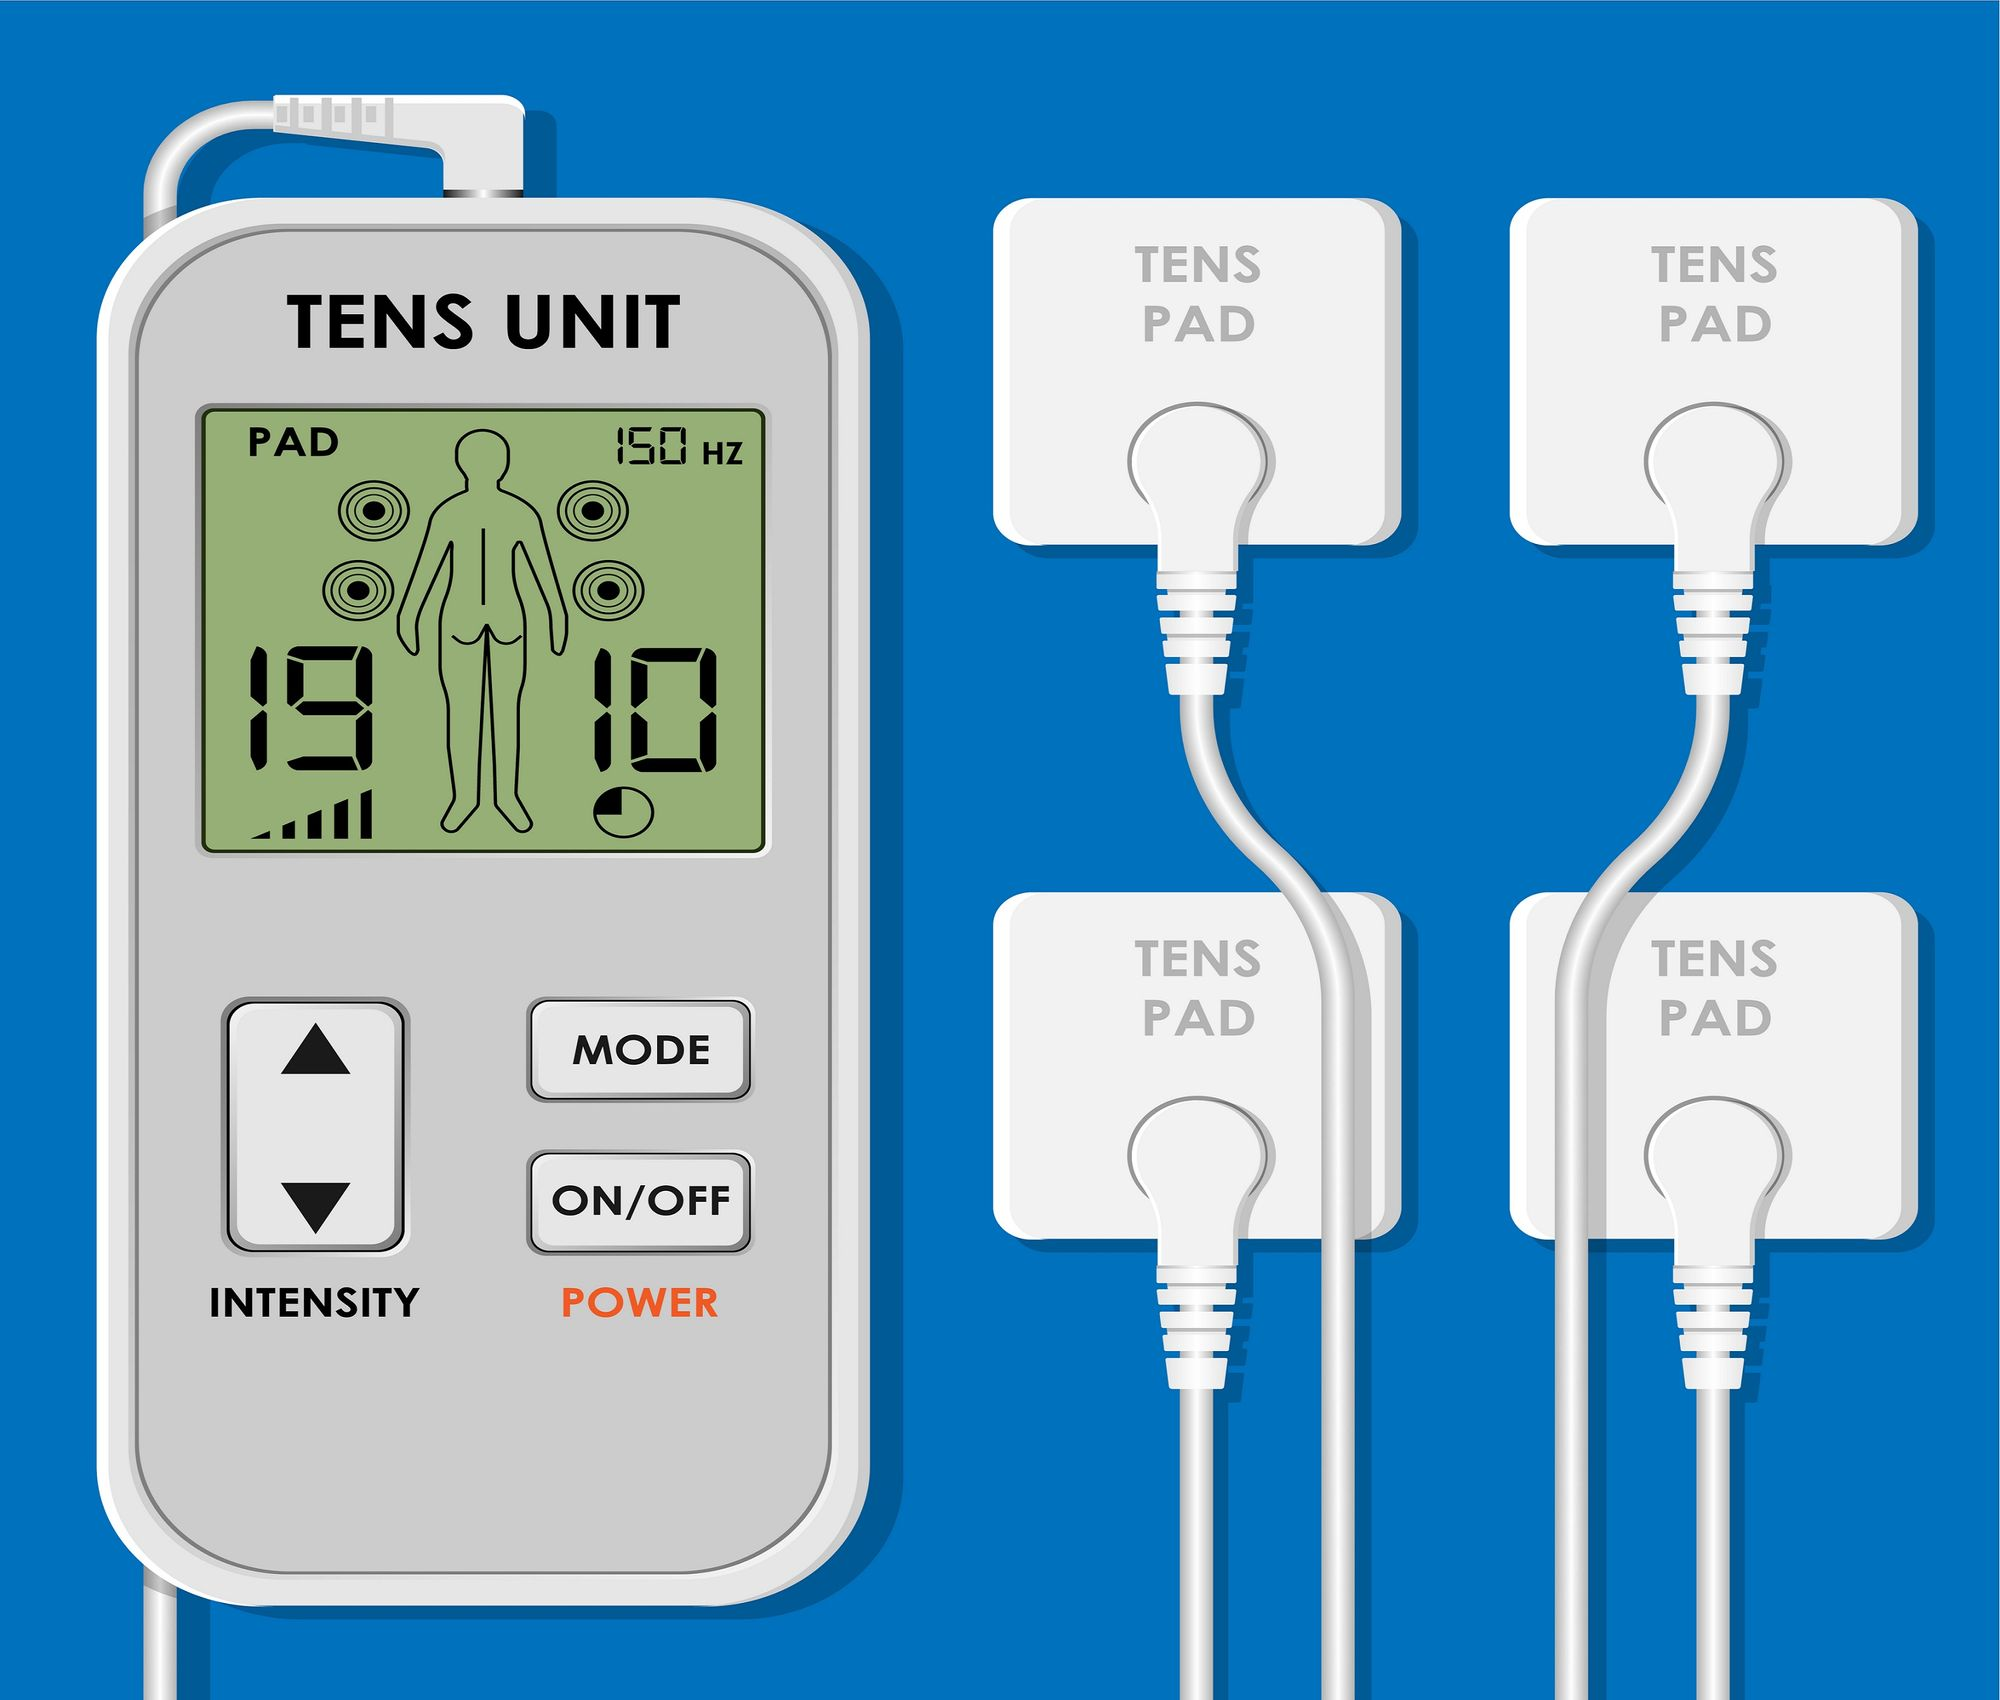 A TENS unit with attached electrode pads.